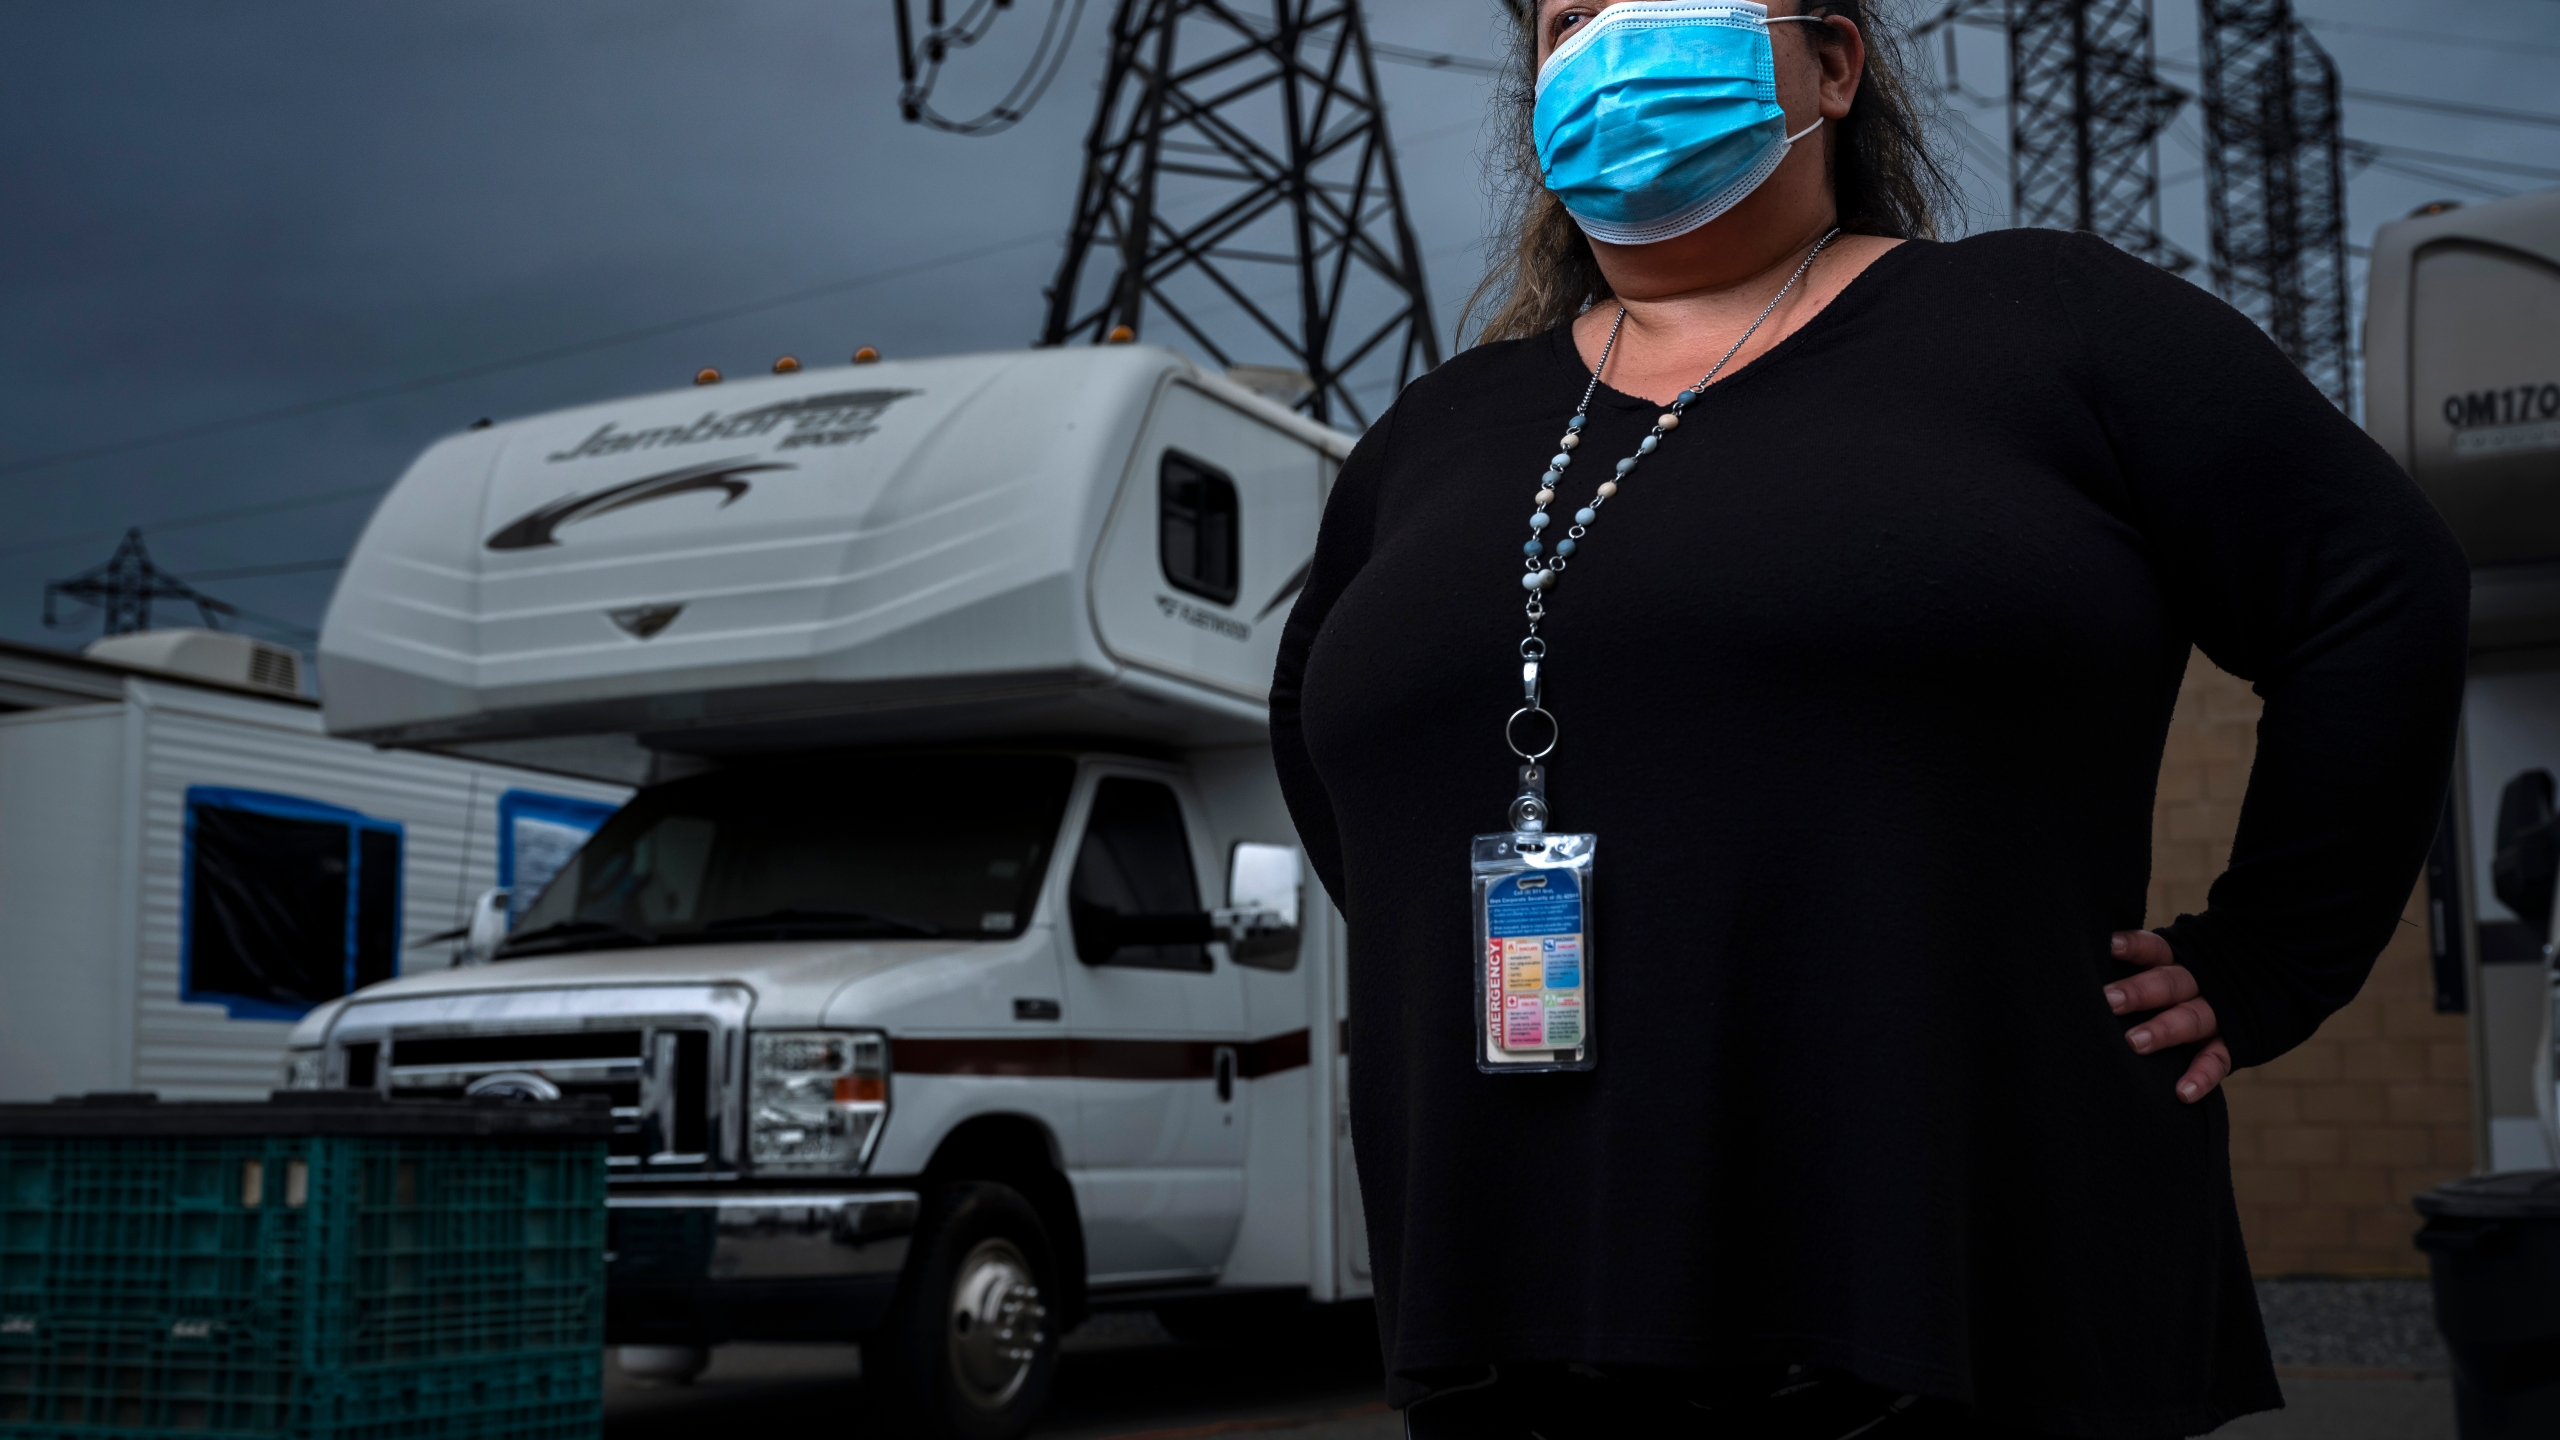 Sandra Nunez, a distribution operations system supervisor at Mira Loma grid management center, poses for a photograph on June 5, 2020 in Ontario. (Brent Stirton/Getty Images)